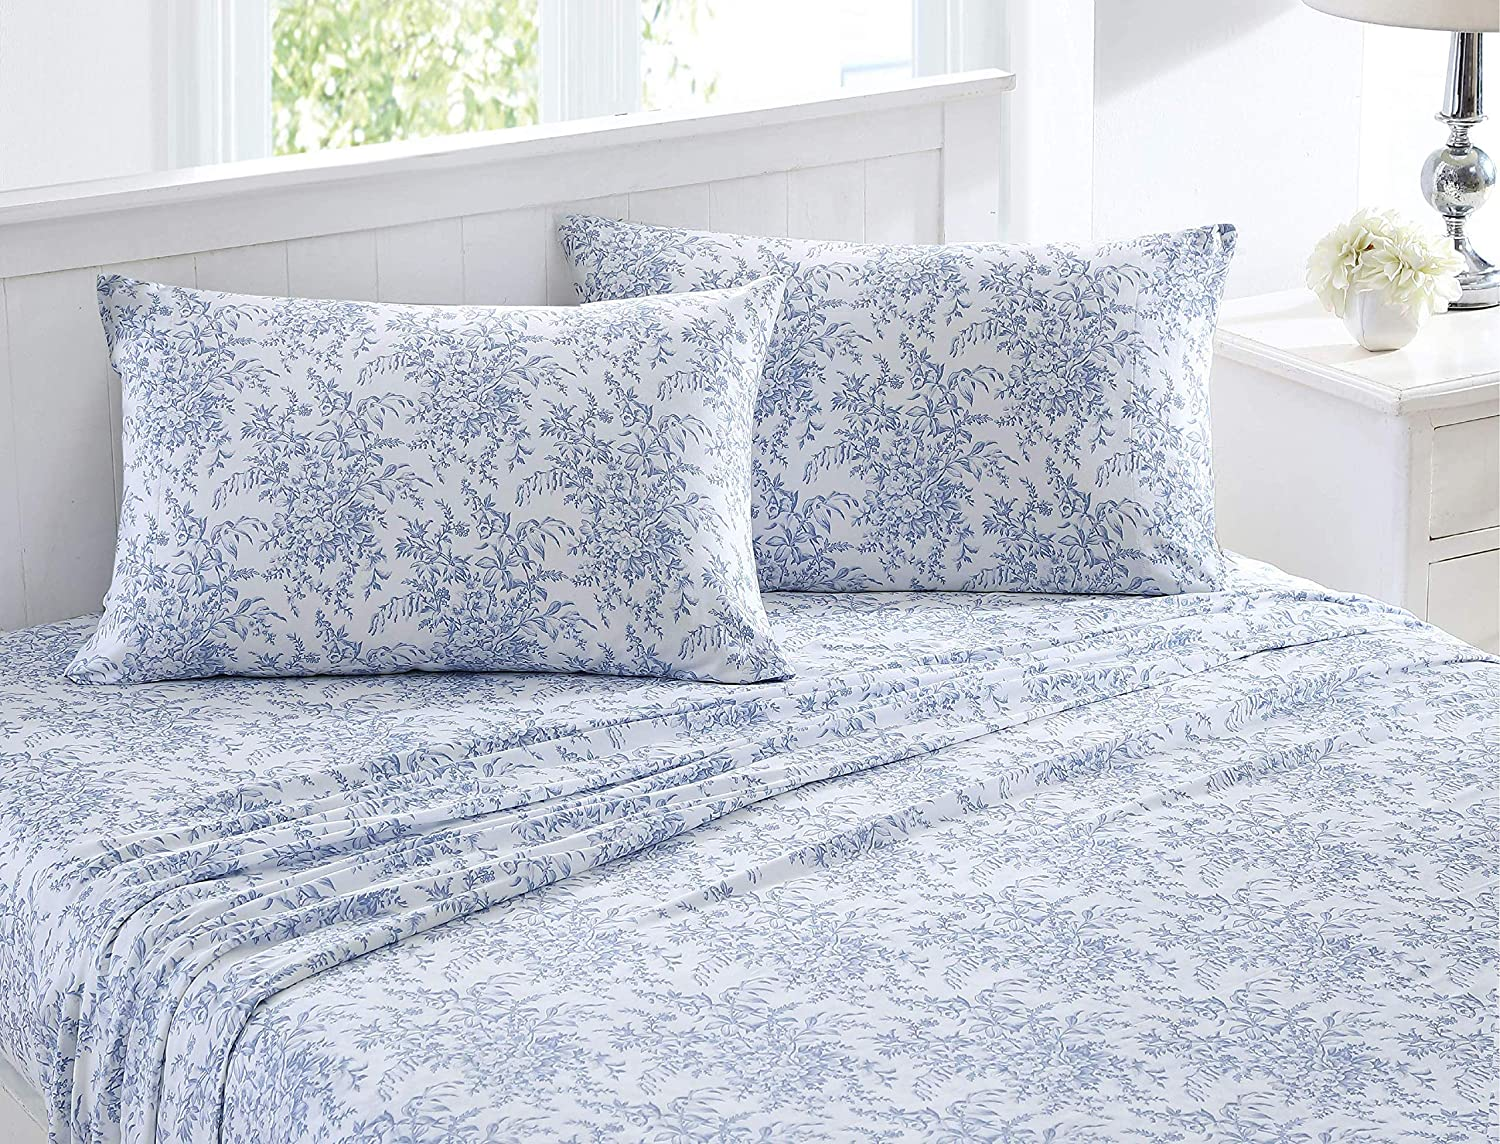 Laura Ashley Home | Betina Collection | Ultra Soft Moisture-Wicking Bedding Set, Non-Irritating Breathable & Wrinkle-Free, Easy Care Tencel Sheet Set, Queen, Blue (USHSA01156157)